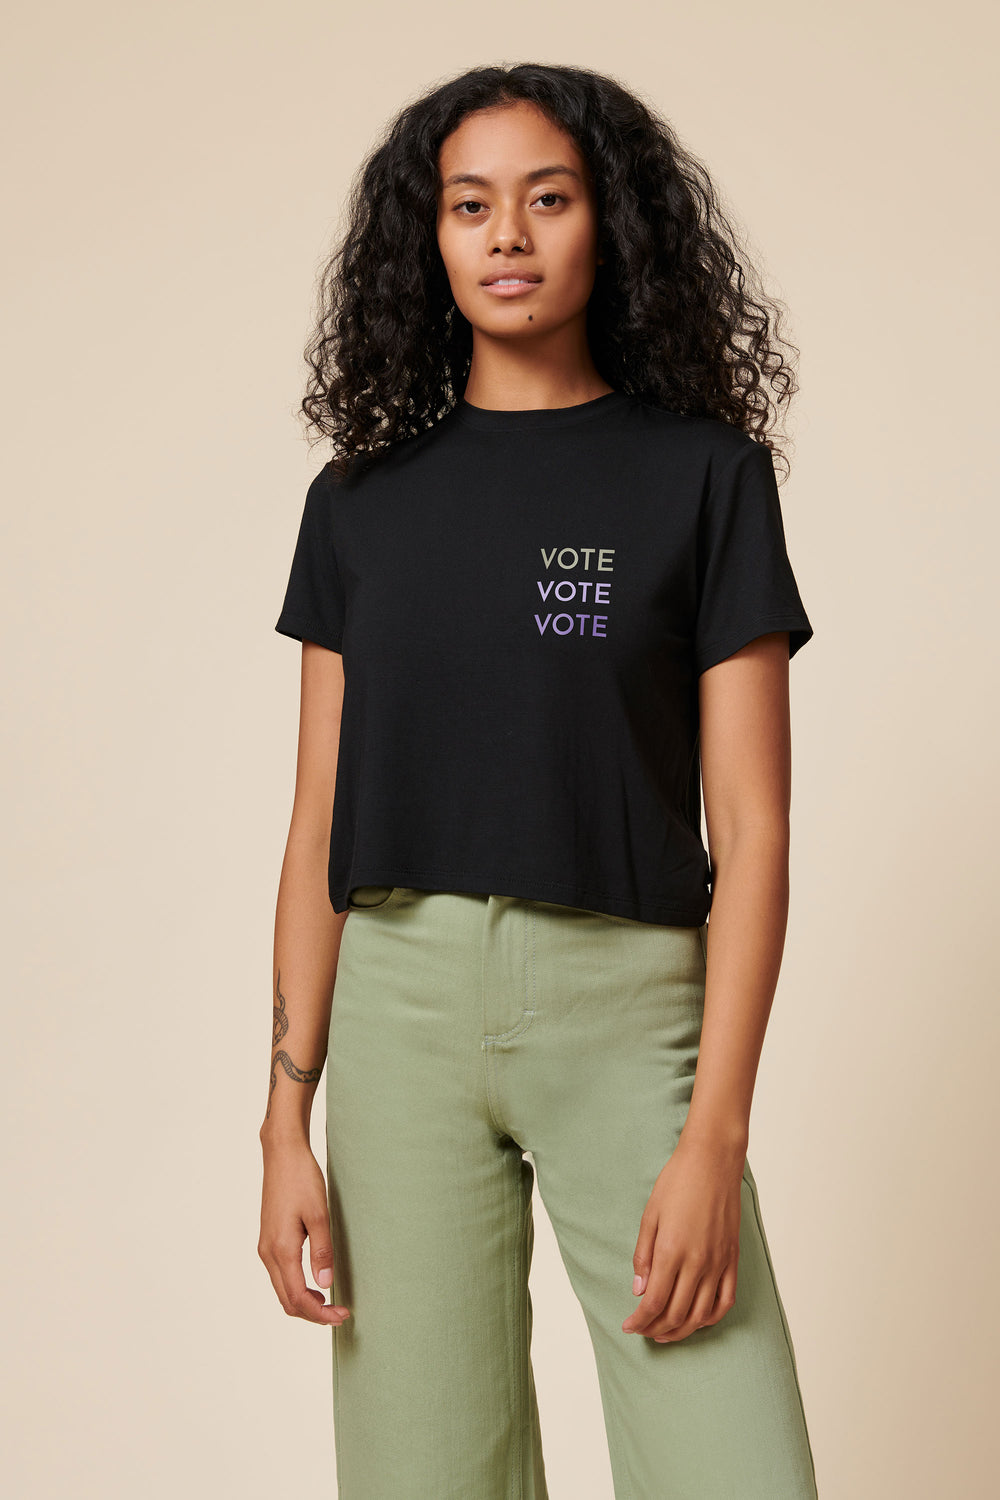 VOTE Tee in Black - Whimsy & Row